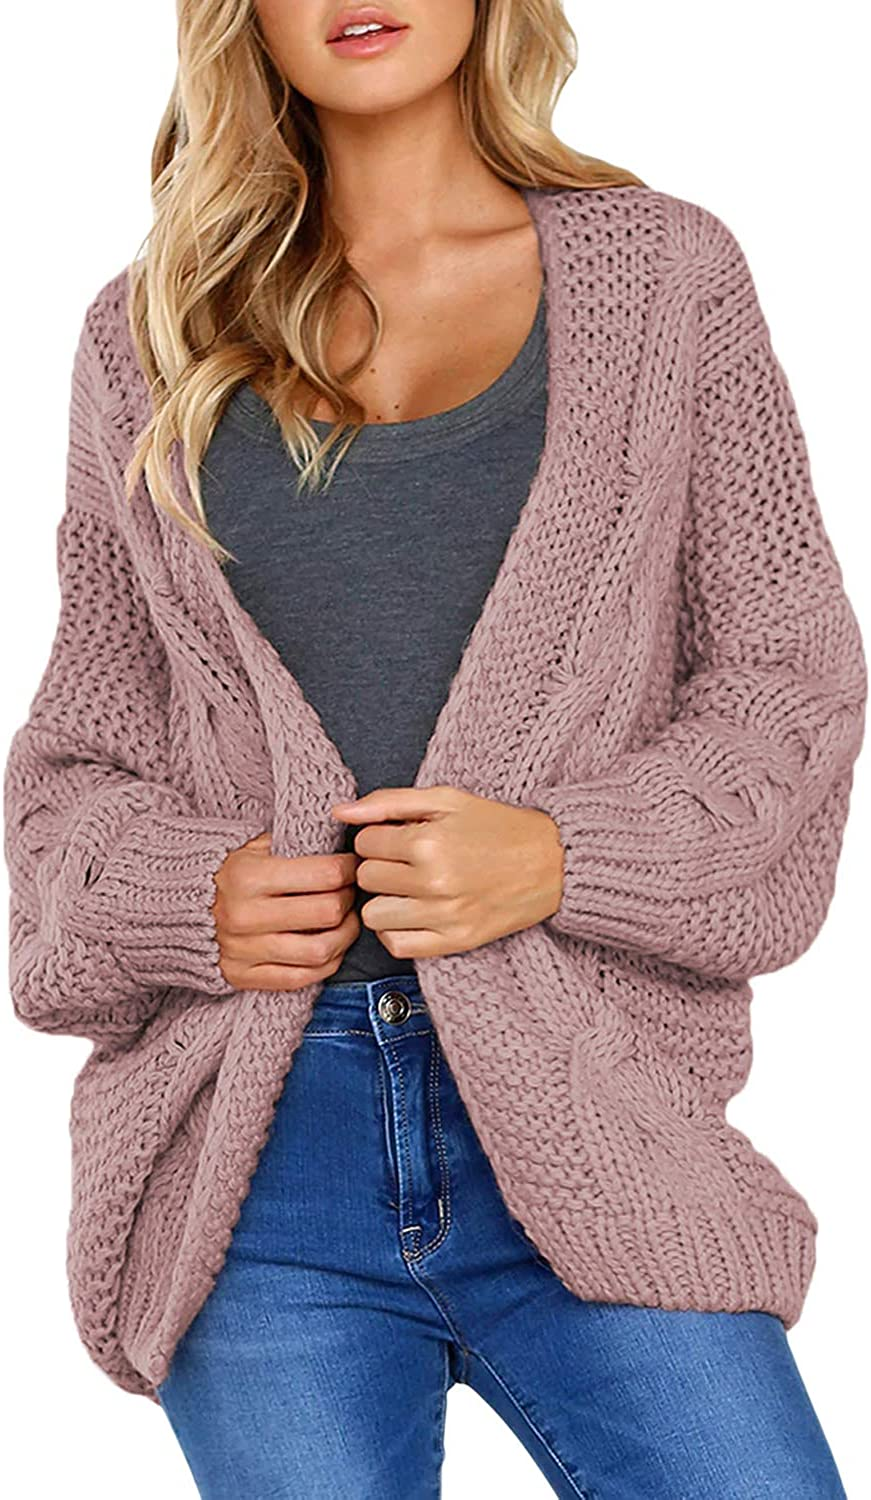 Dearlove Womens Long Sleeve Solid Color Chunky Knit Cardigans Sweater